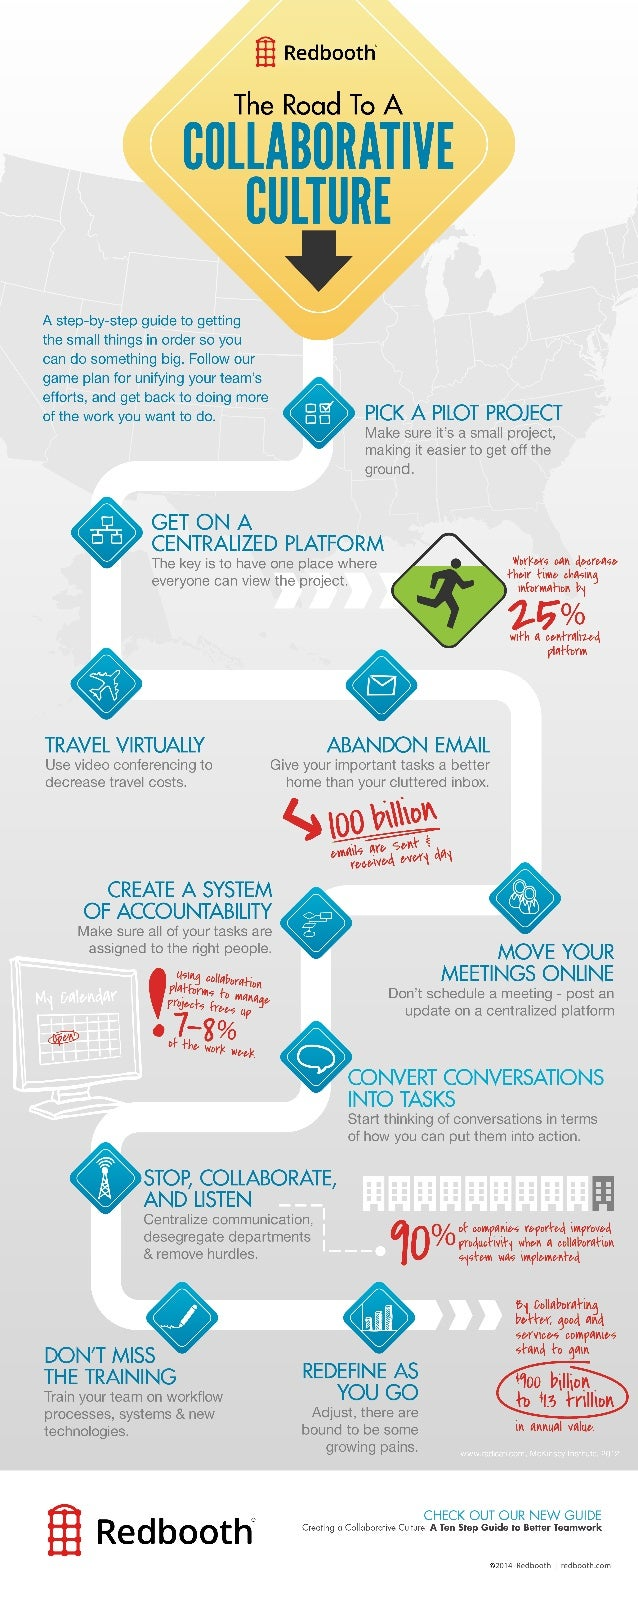 The Road to a Collaborative Culture infographic